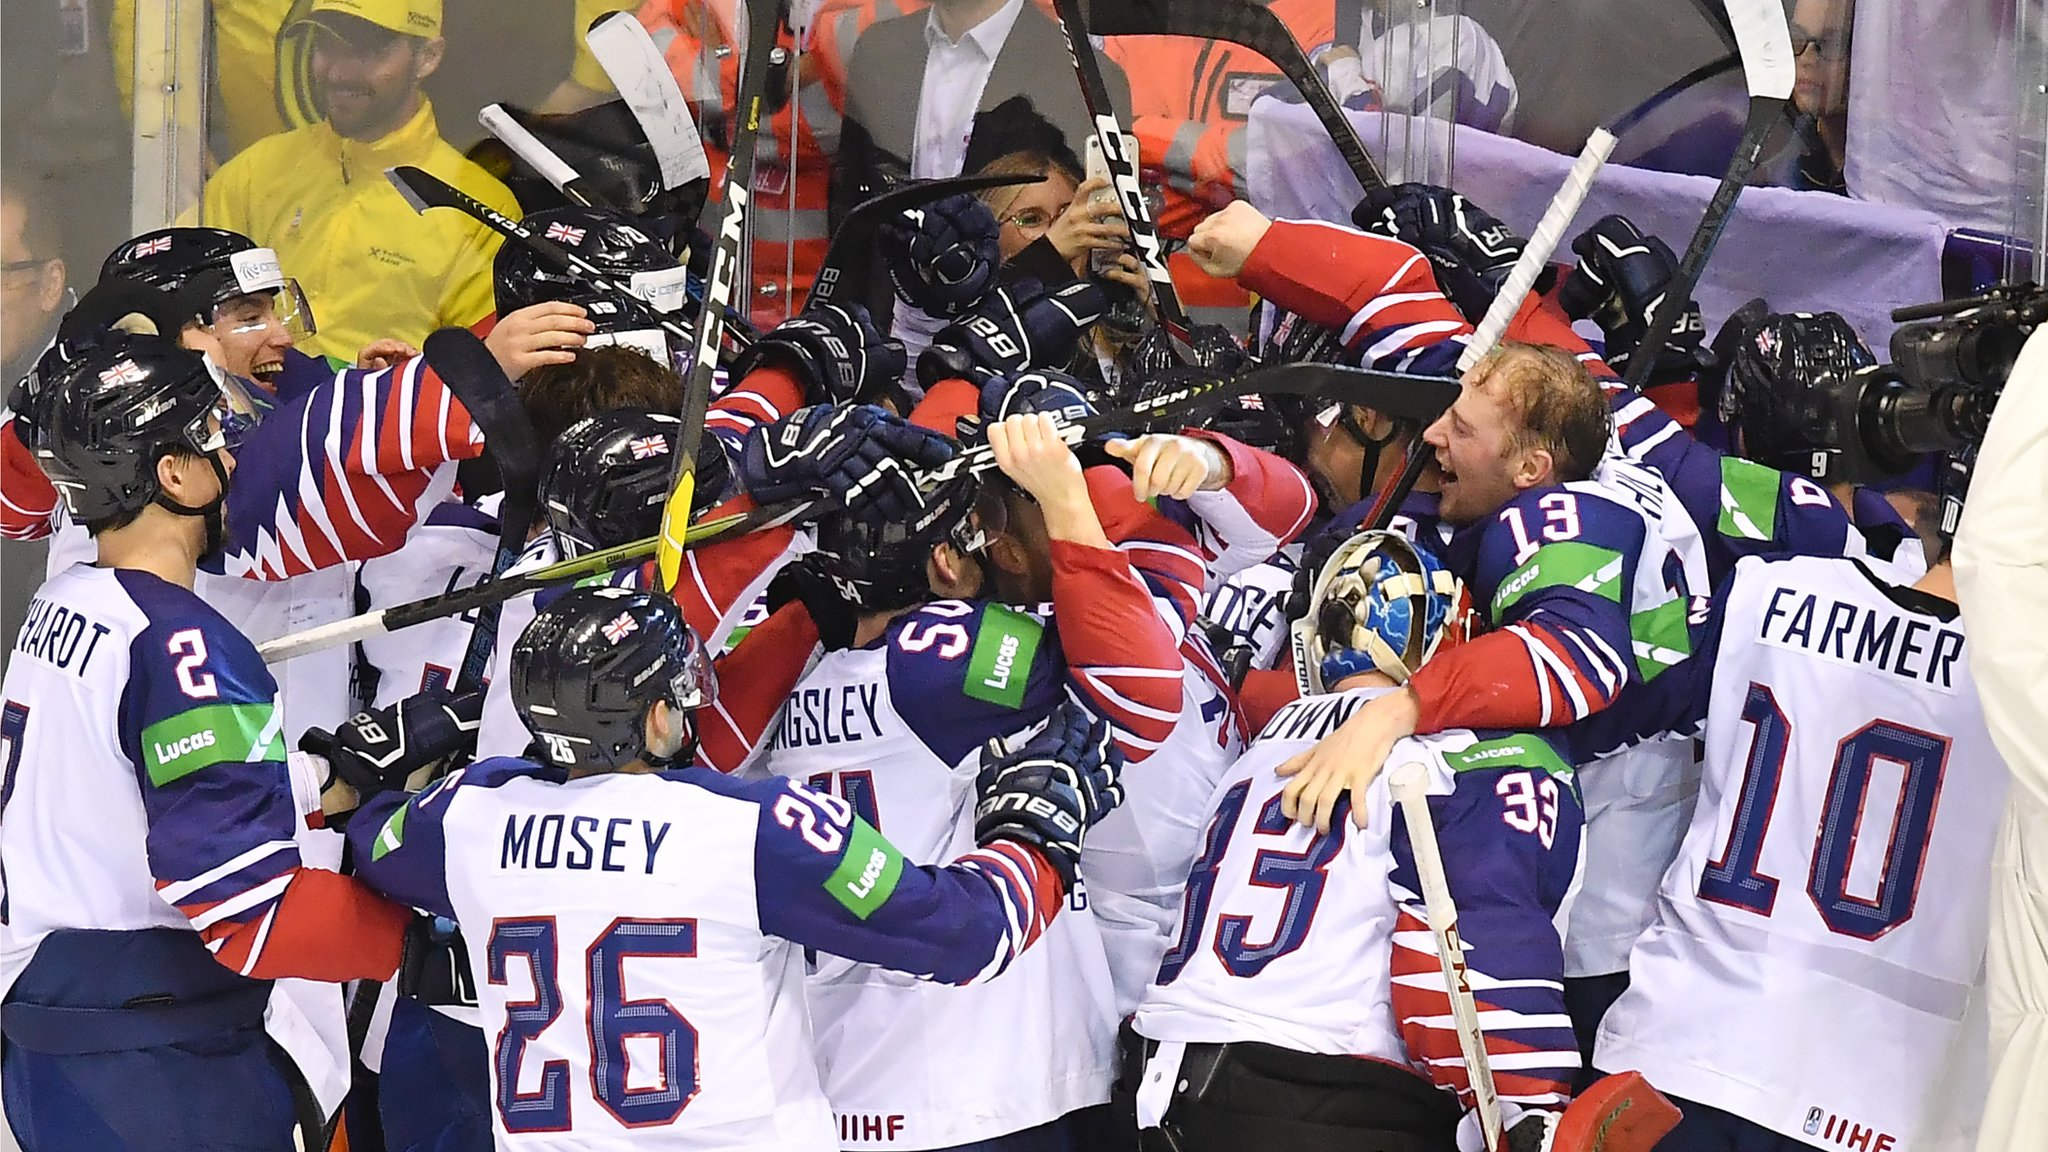 Britain stay in top division after dramatic overtime win